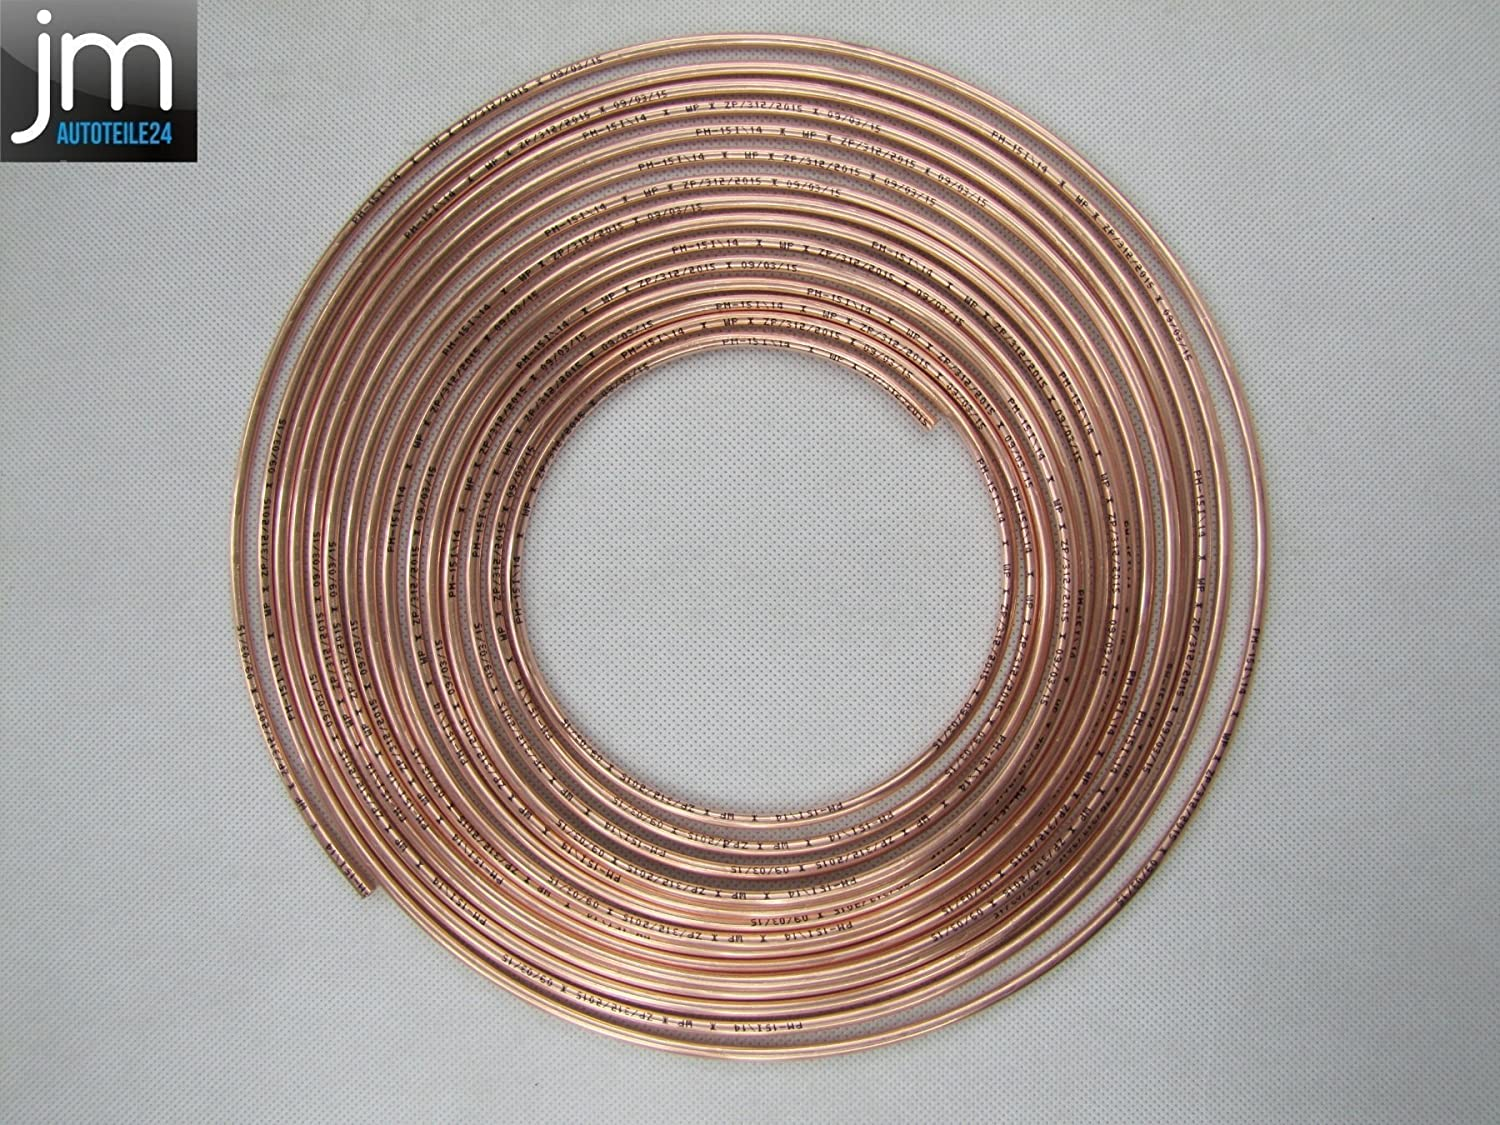 Wp - 10  m  –   cable freno freno tubo 4, 75  mm cobre 75 mm cobre